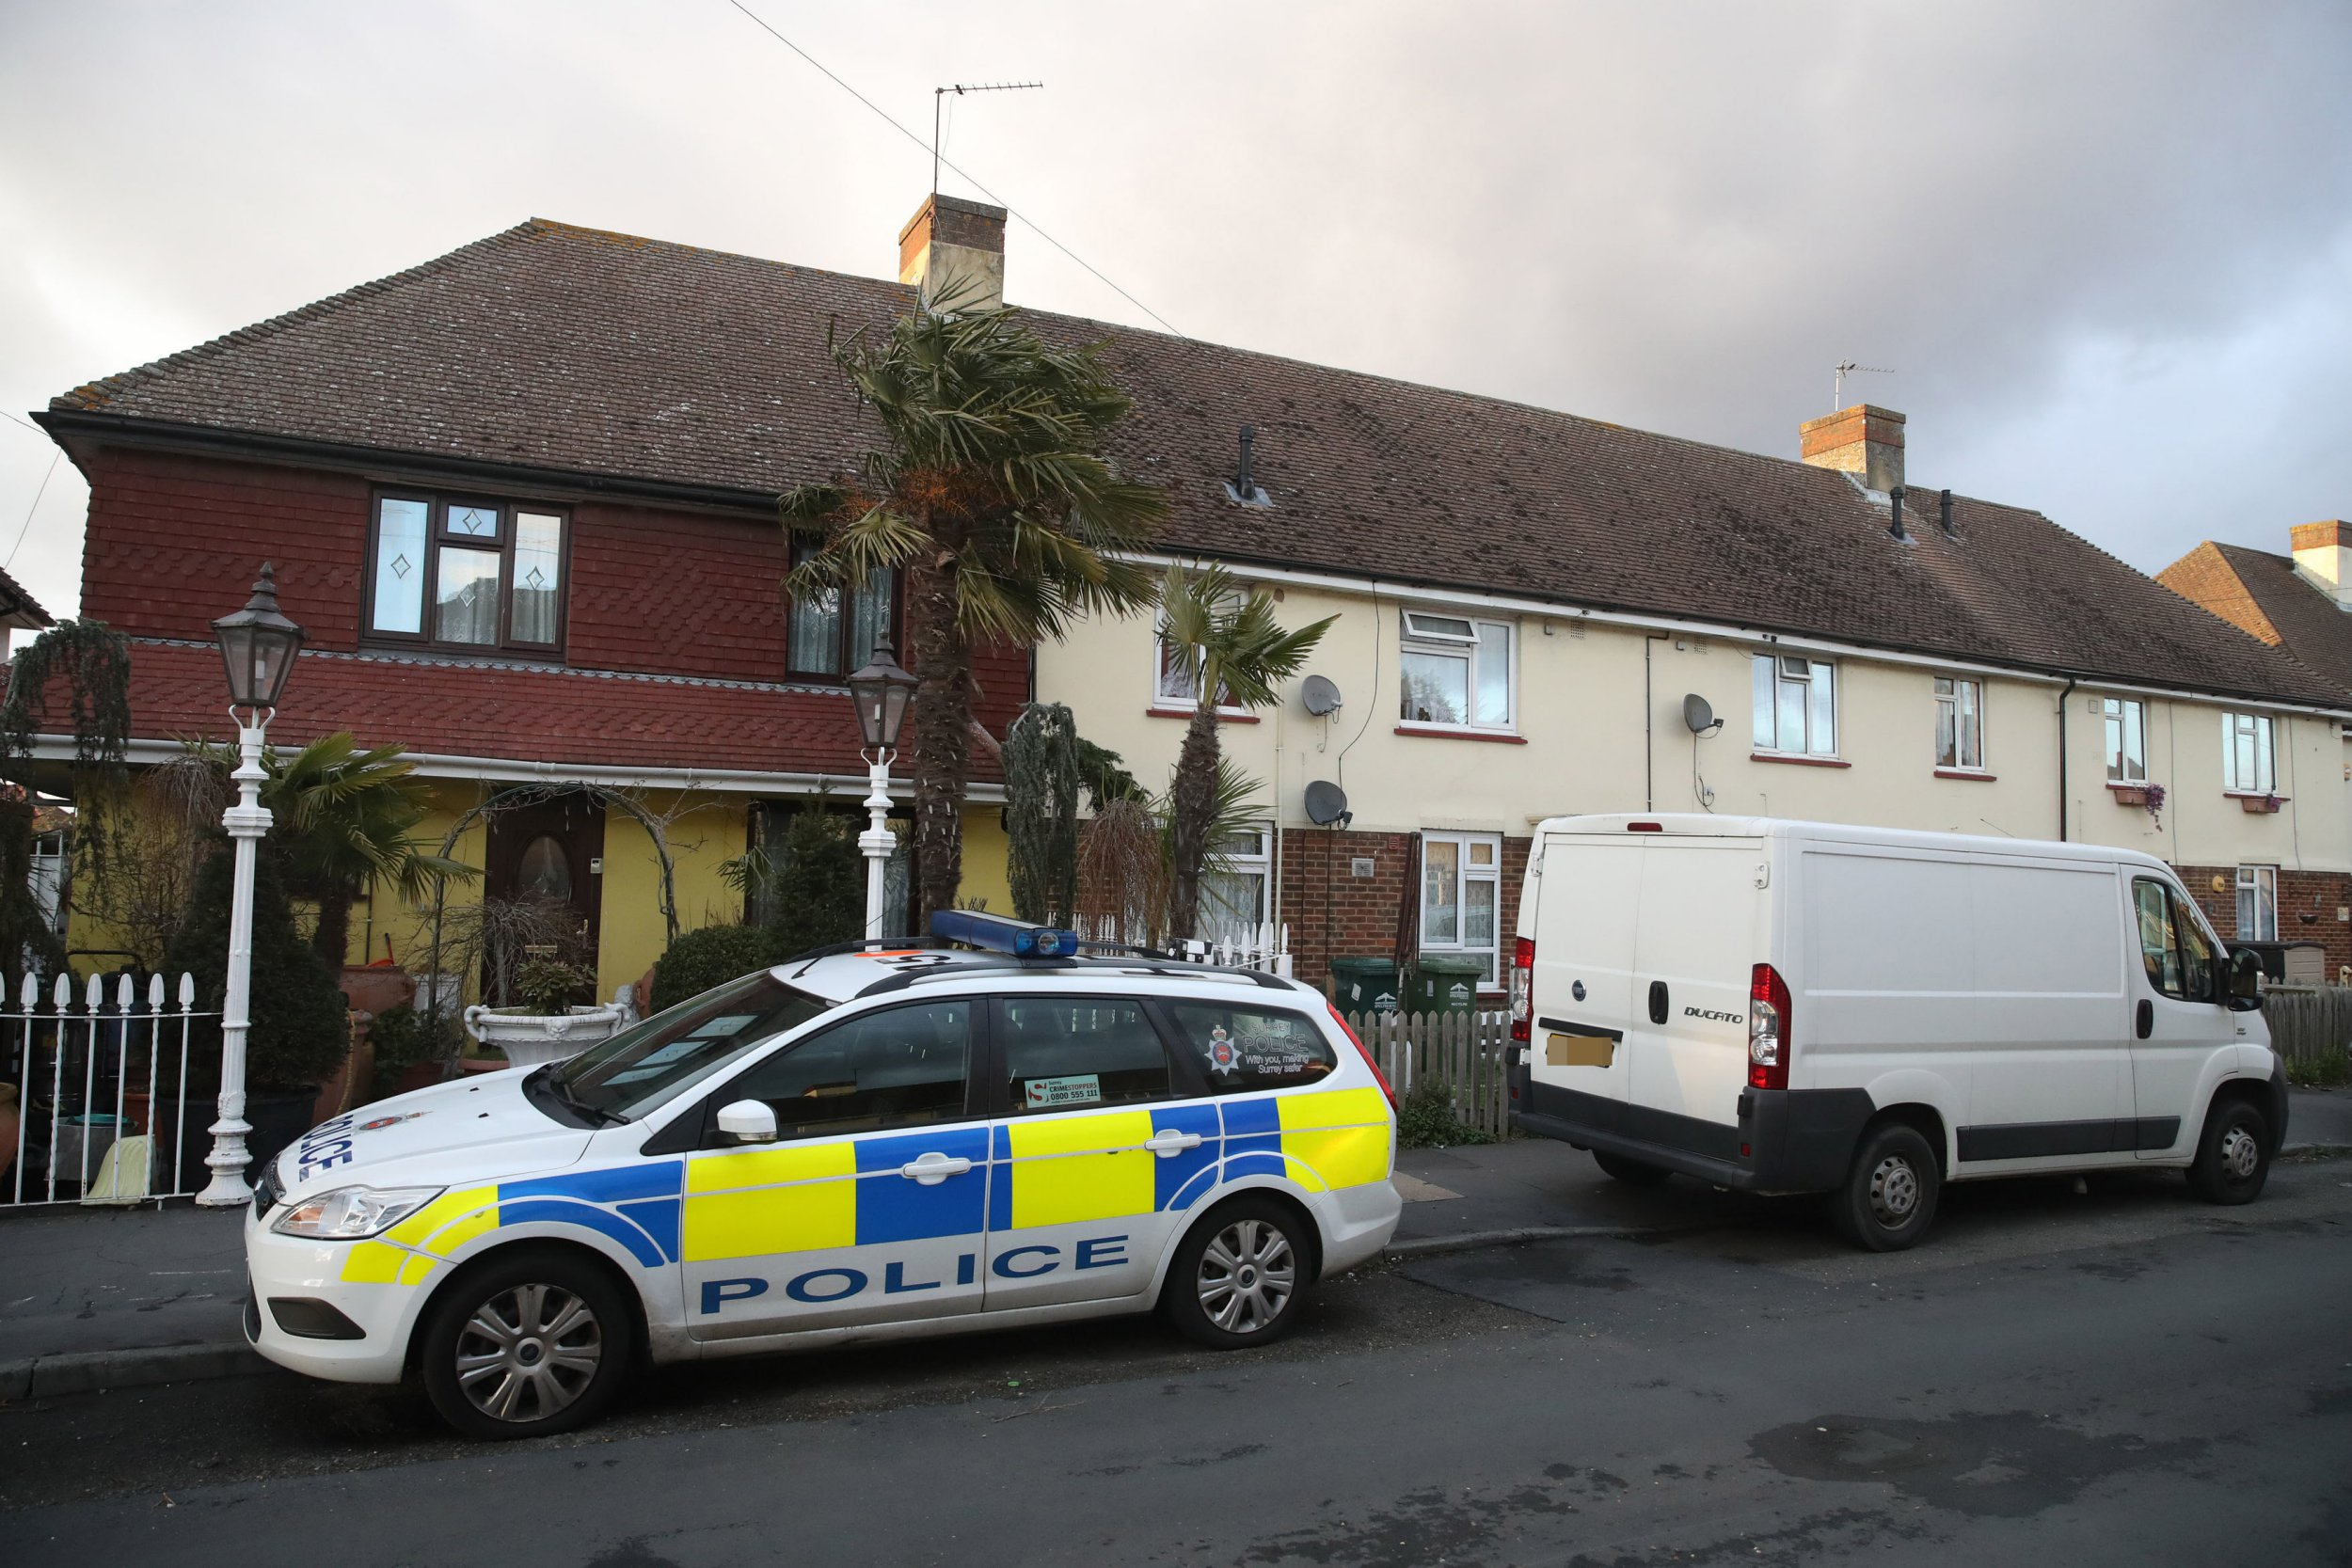 Police in Viola Avenue in Stanwell, Surrey where they are investigating a stabbing in which a man rampaged with a baseball bat and knife while hurling racist abuse. PRESS ASSOCIATION Photo. Picture date: Sunday March 17, 2019. Counter terrorism officers and Surrey Police are investigating after the incident on Saturday night. A 50-year-old man from the village was arrested on suspicion of attempted murder and racially aggravated public order offences. See PA story POLICE Stanwell. Photo credit should read: Steve Parsons/PA Wire